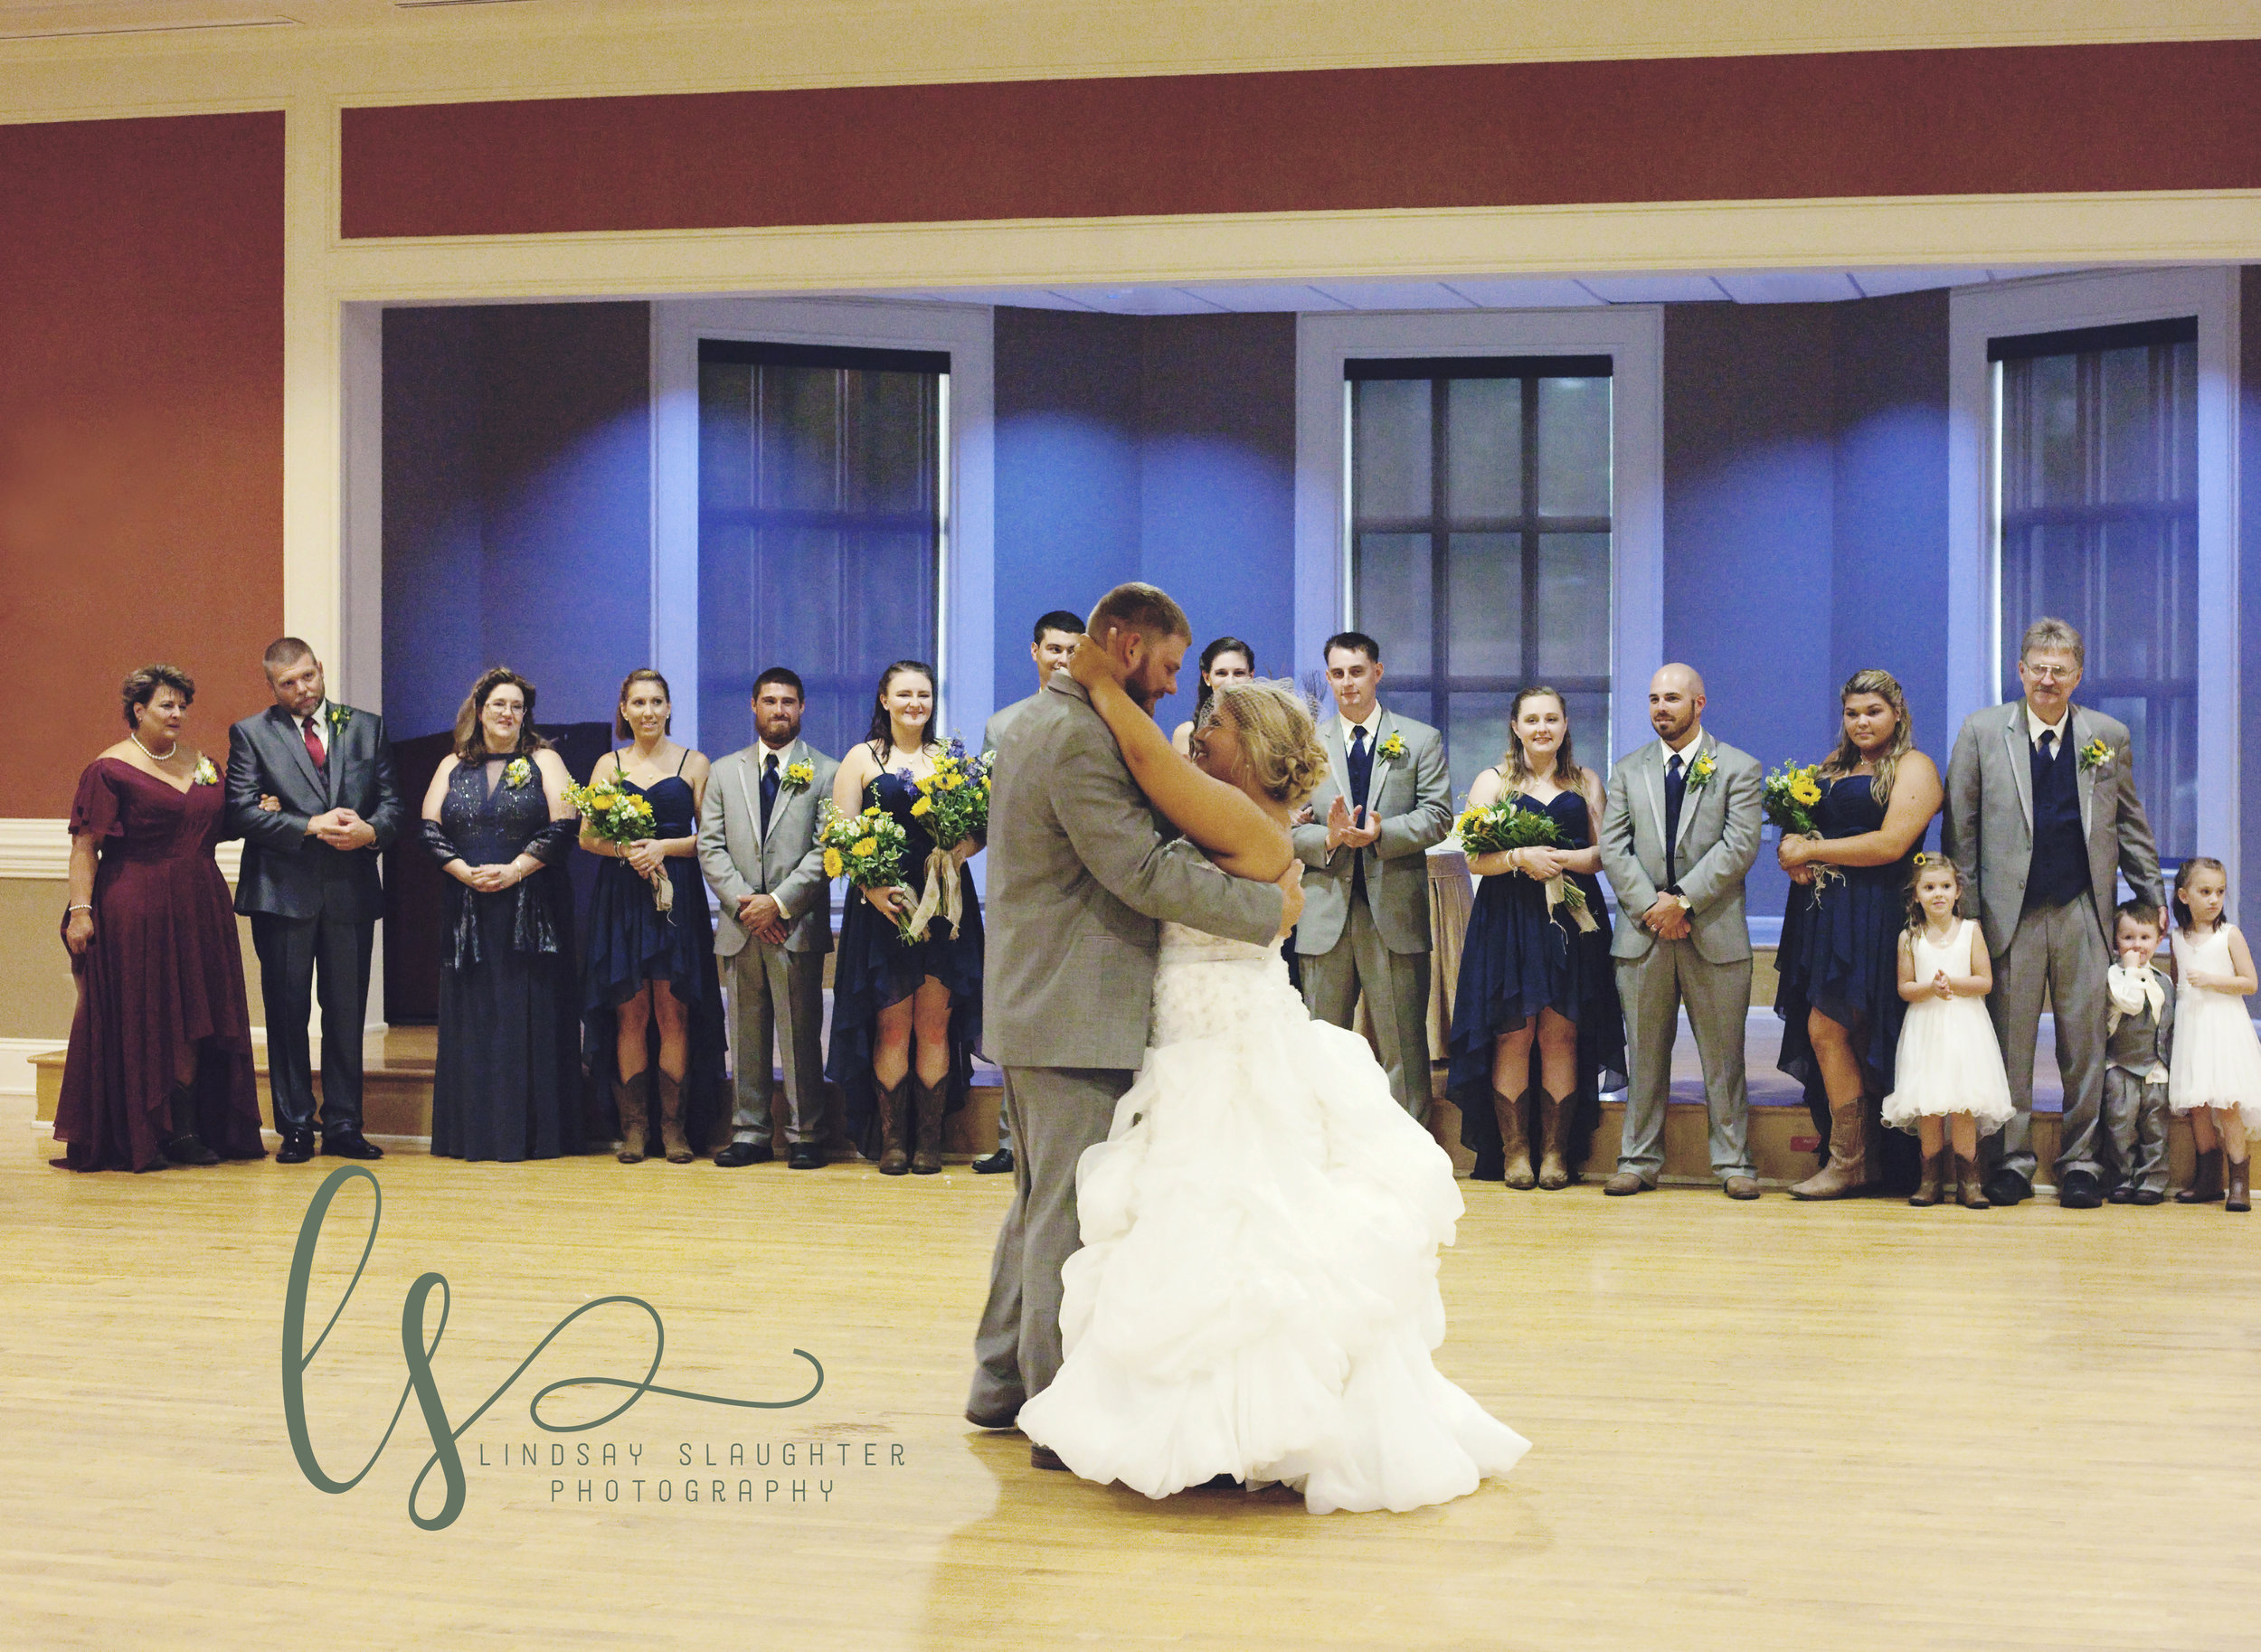 They danced their first dance and it was beautiful.